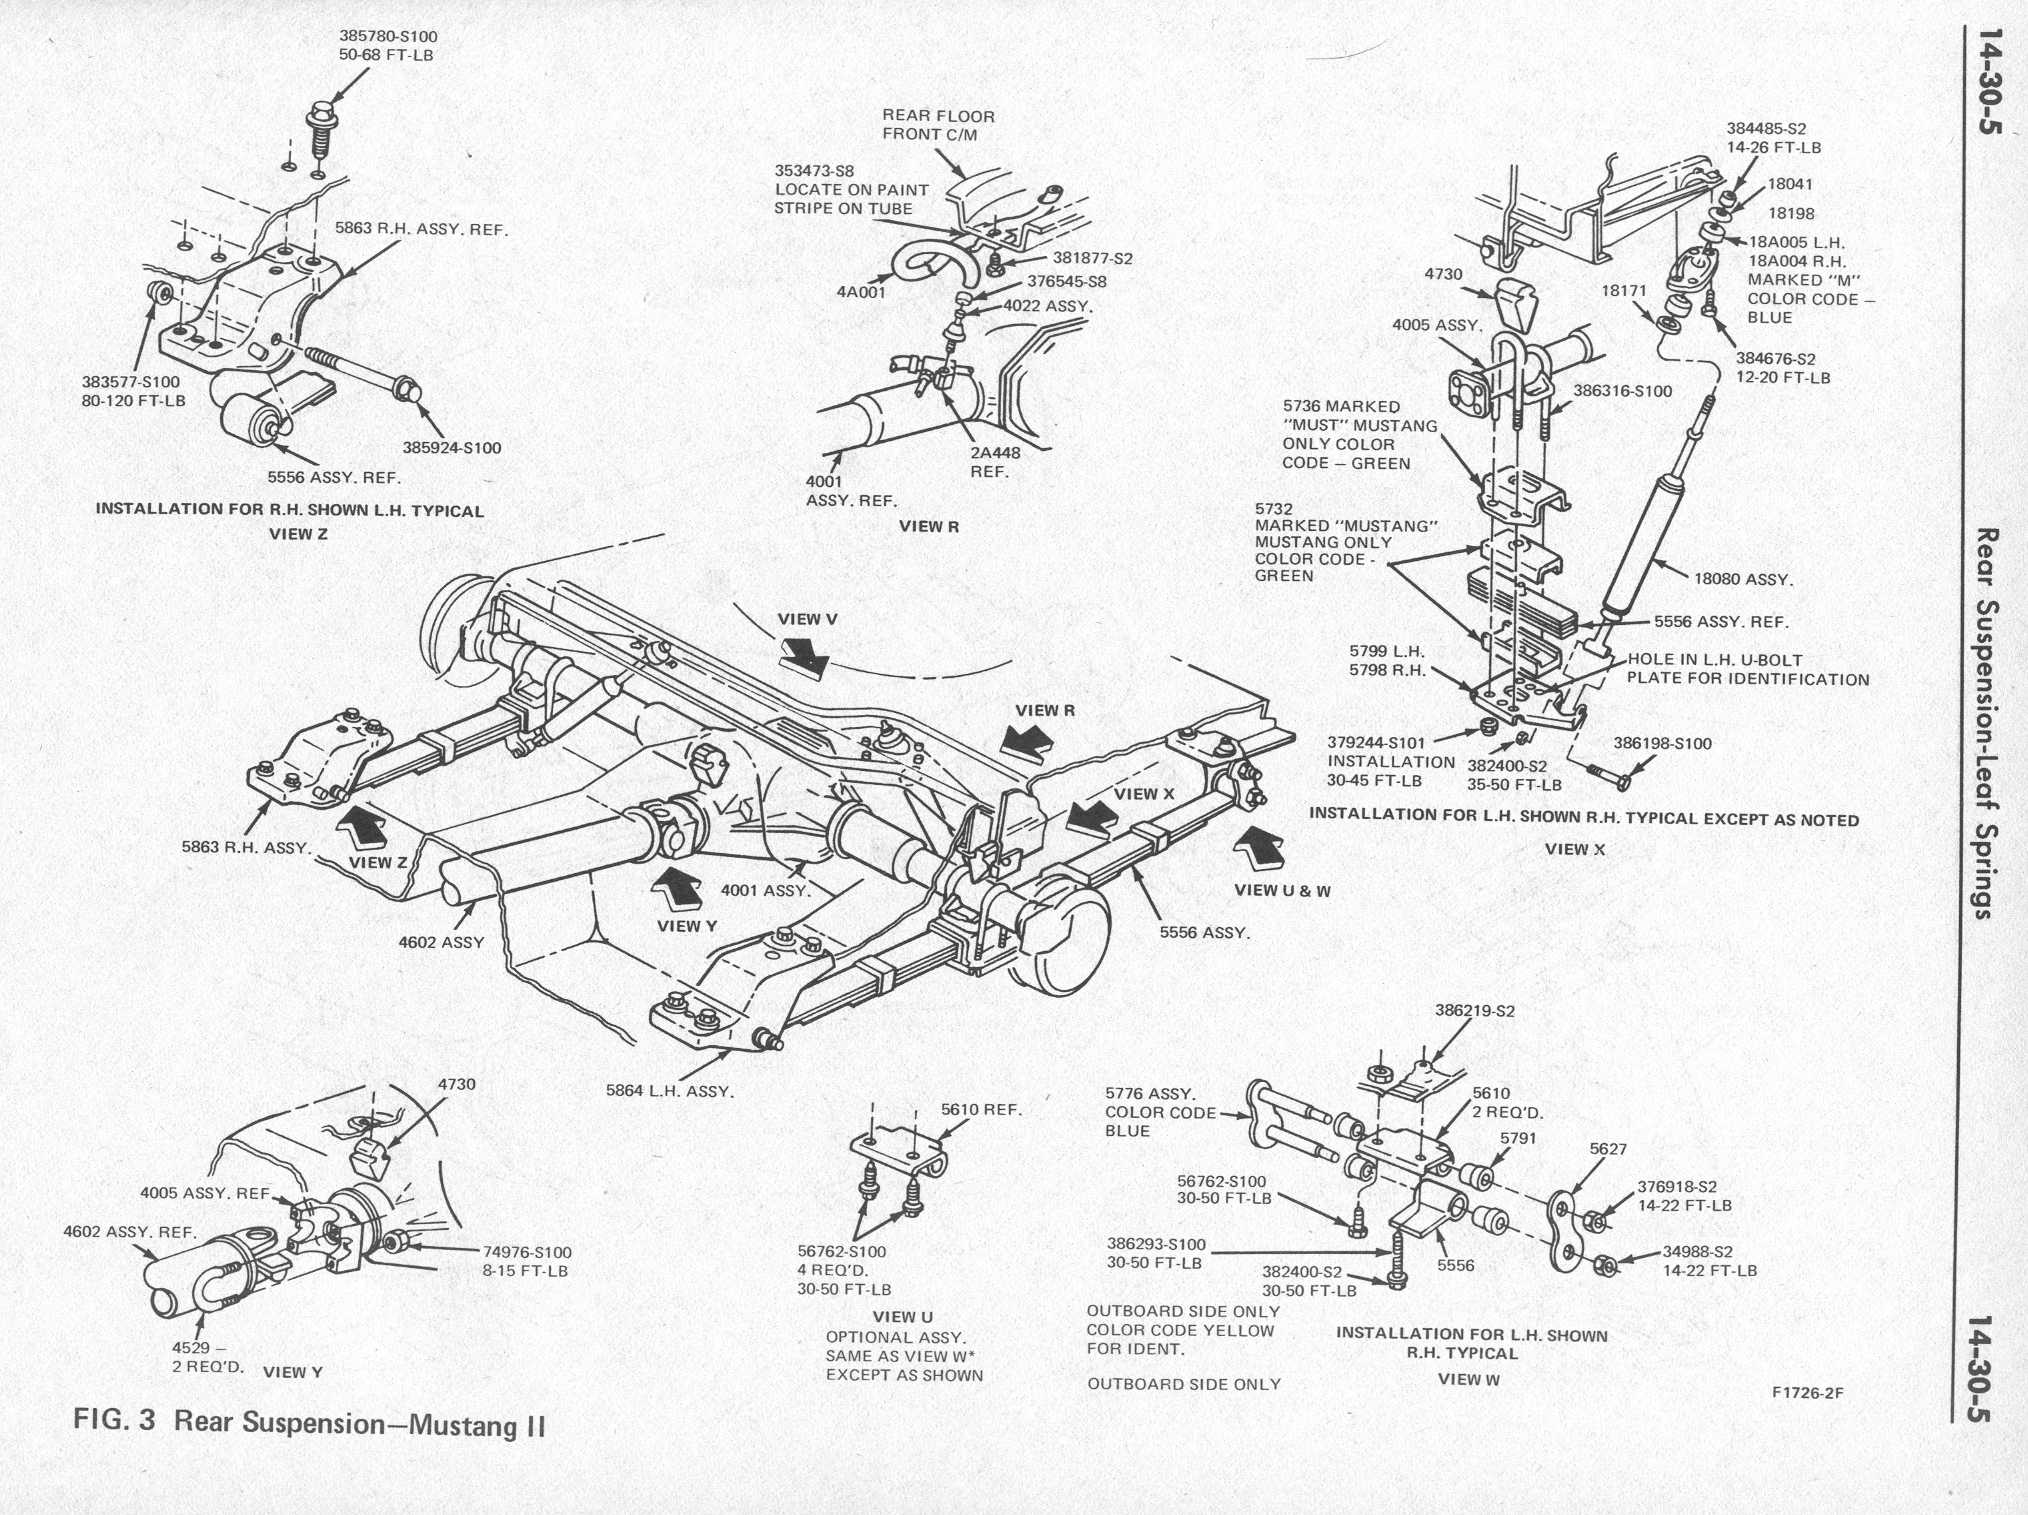 rear susp large the mustang ii organization mustang front suspension diagram at bayanpartner.co